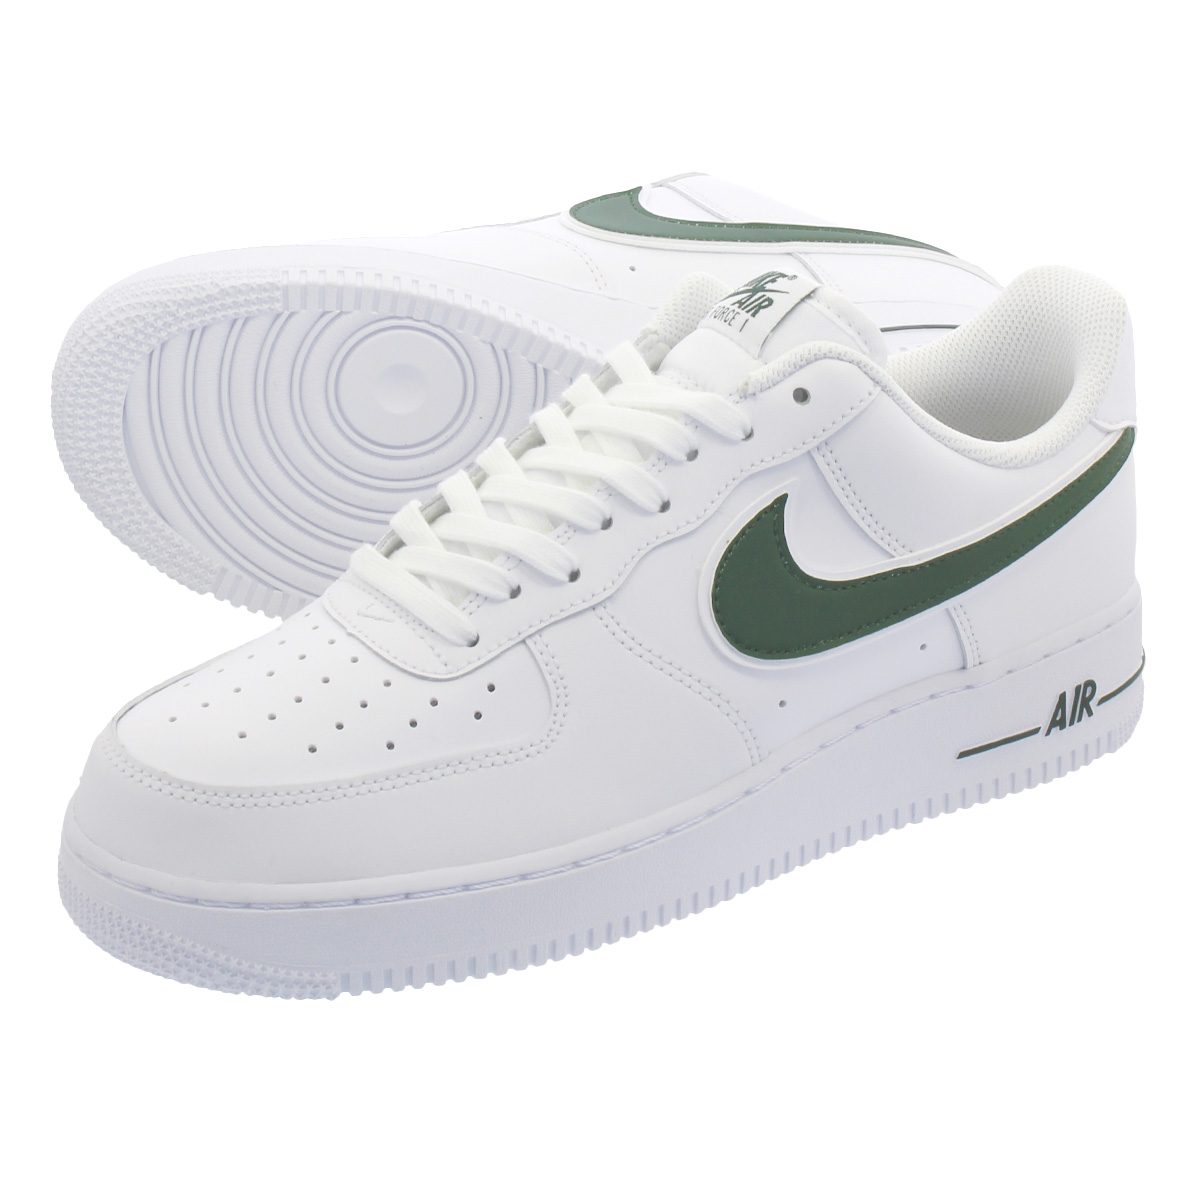 NIKE AIR FORCE 1 '07 Nike air force 1 '07 WHITECOSMIC BONSAI ao2423 104